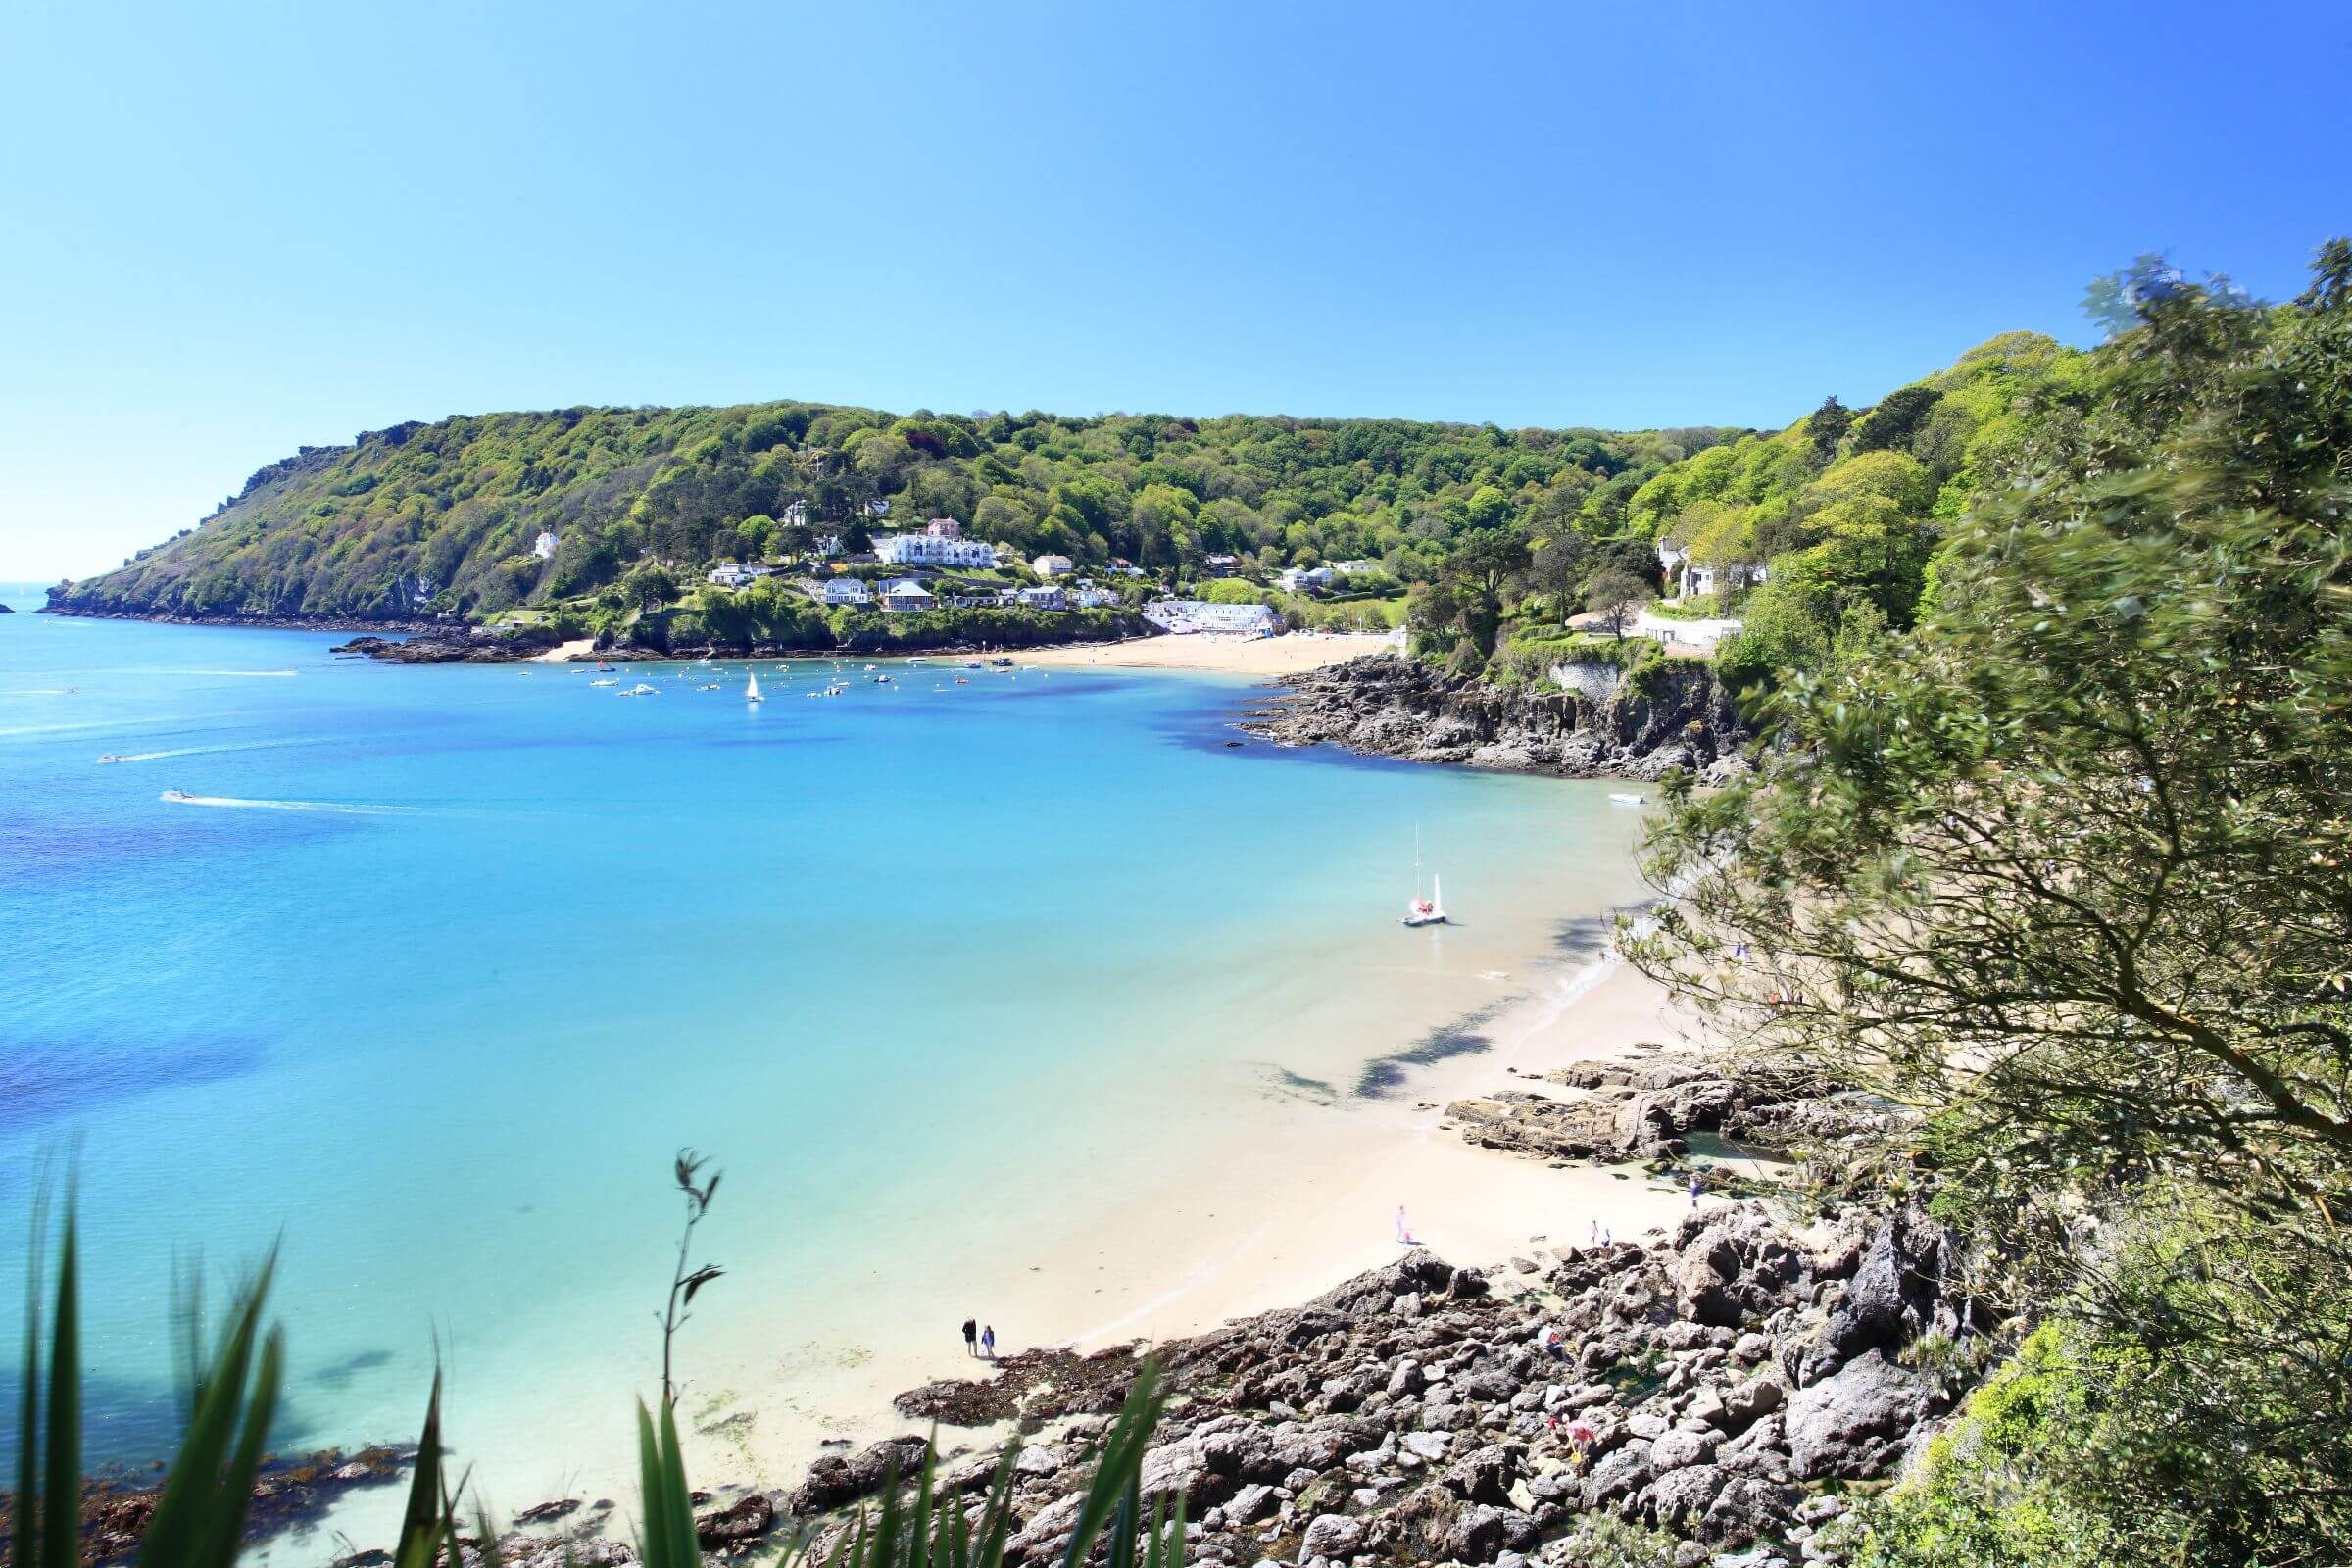 Beach in Salcombe, Devon